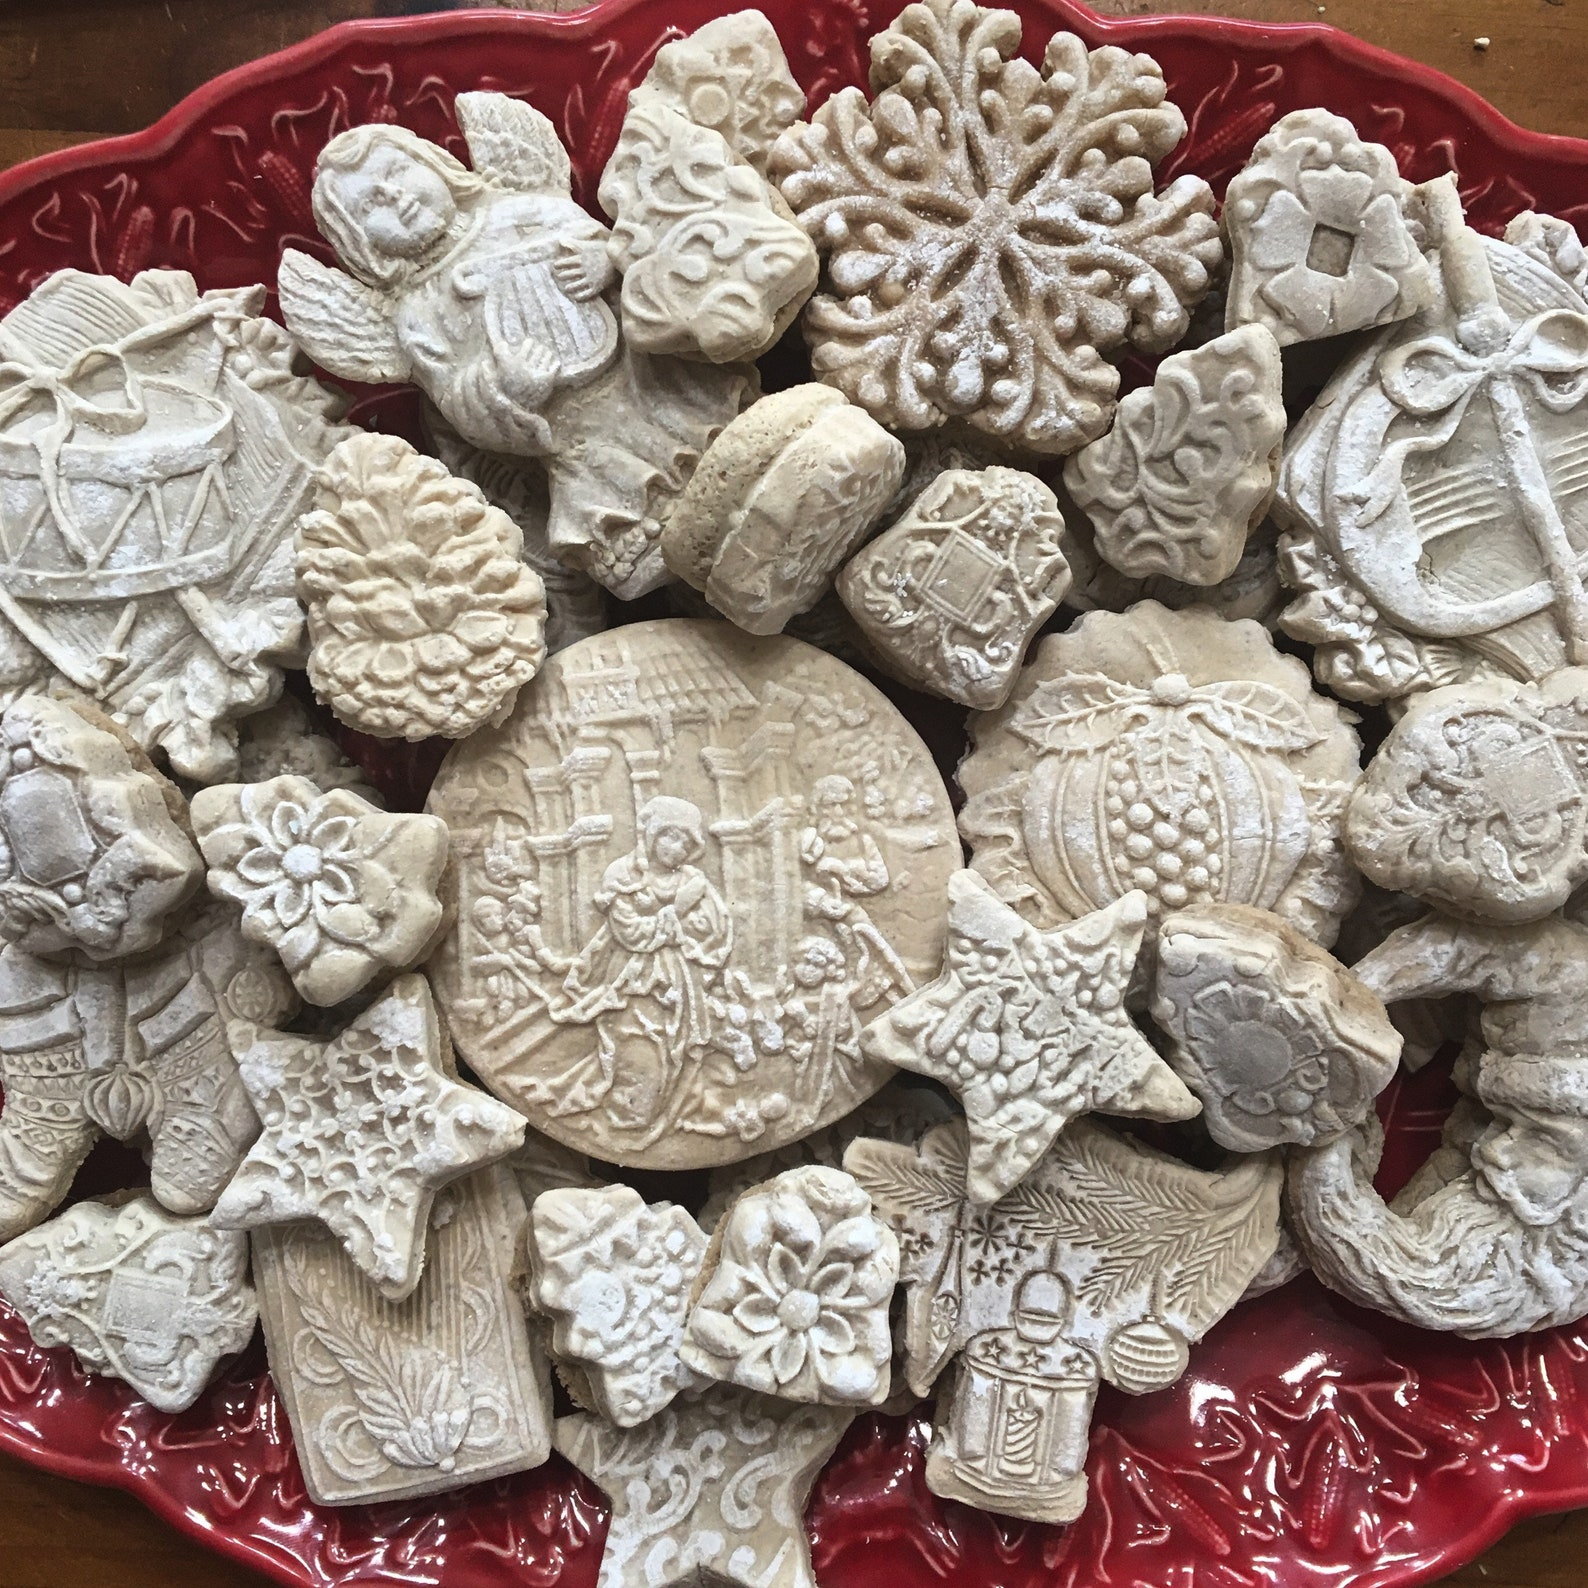 24 Vintage Christmas Tea Cake Cookies Victorian Egg Nog Springerle and Gingerbread, Speculaas, Speculoos Lebkuchen